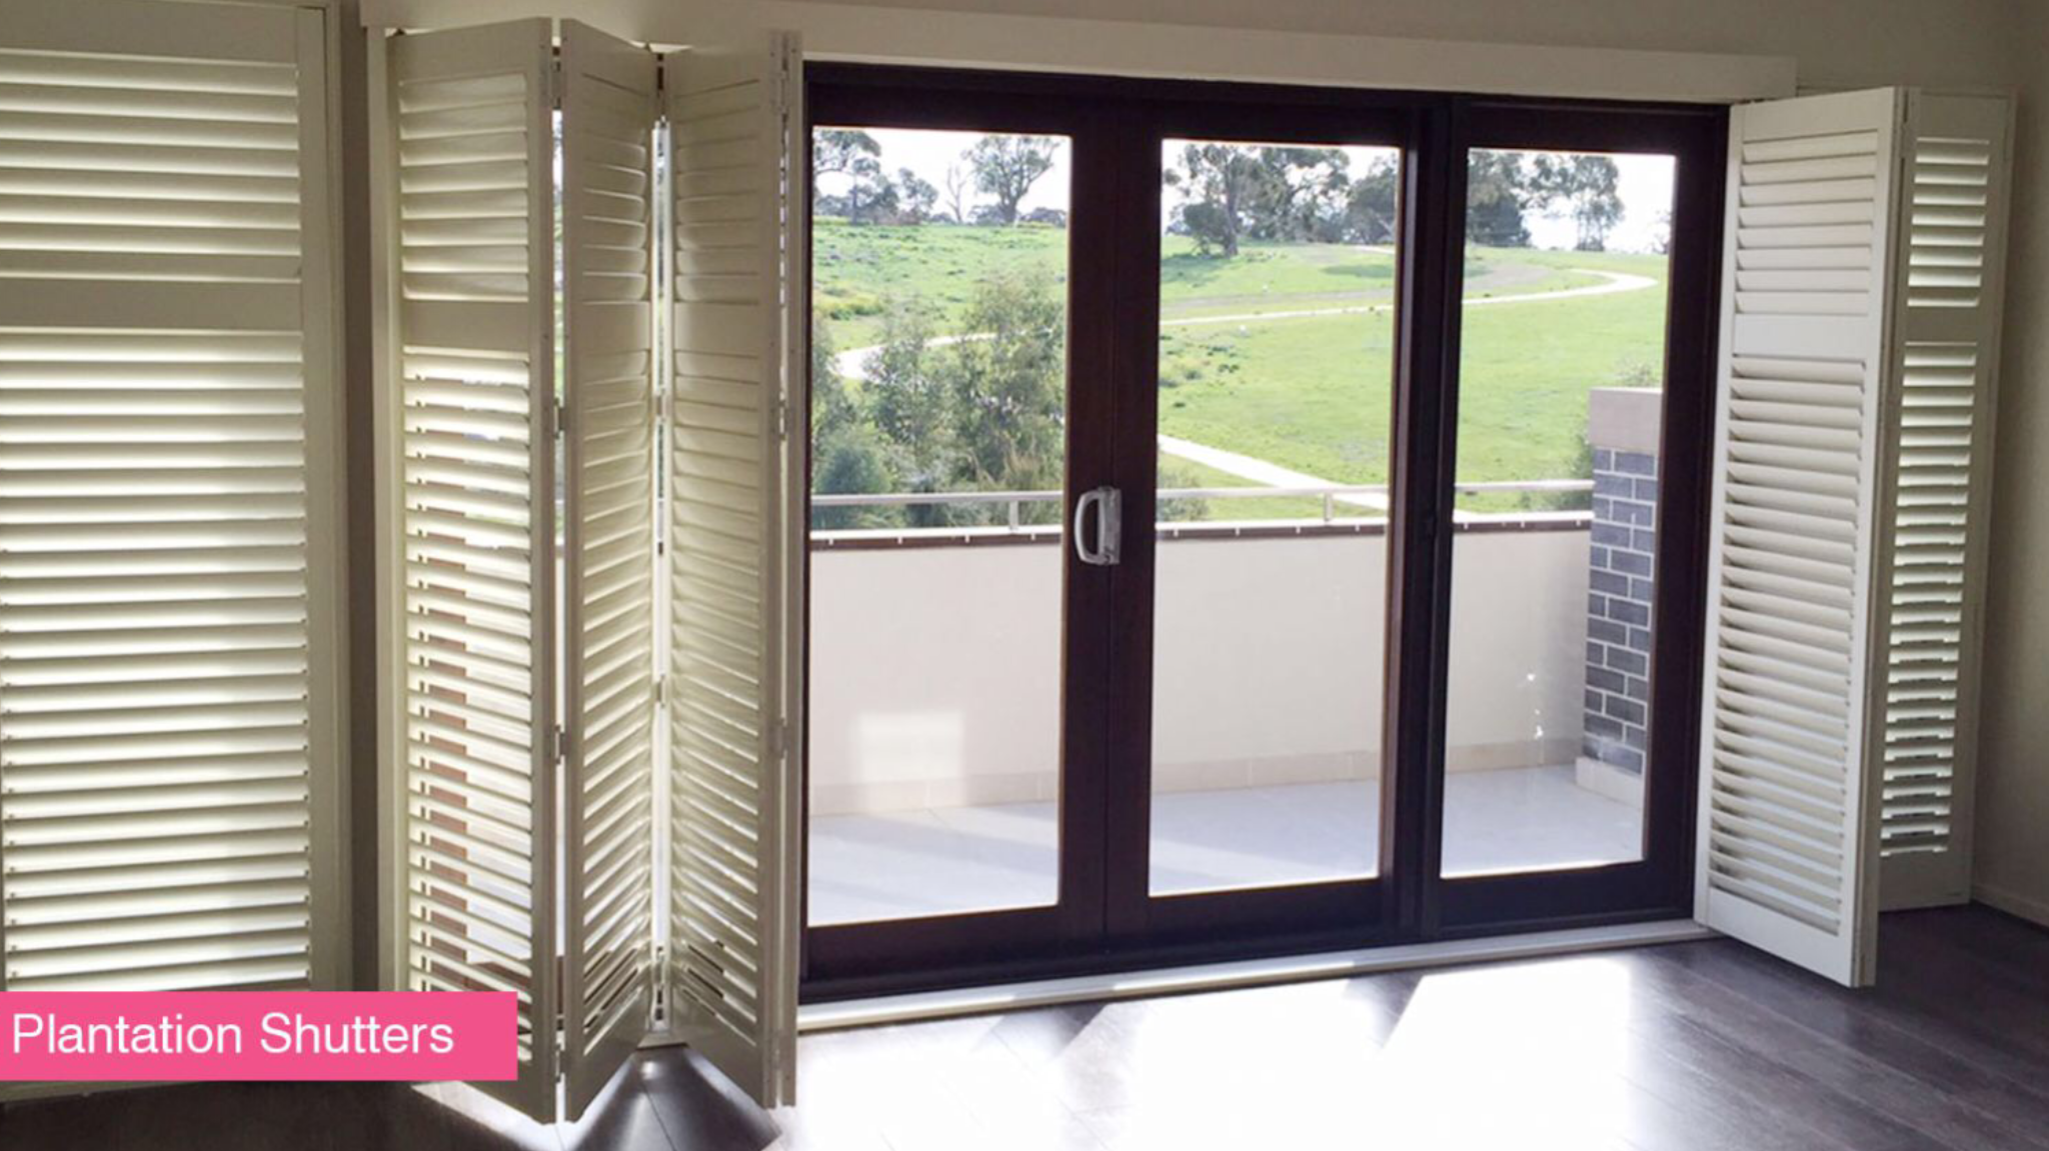 Bi-fold patio door shutters